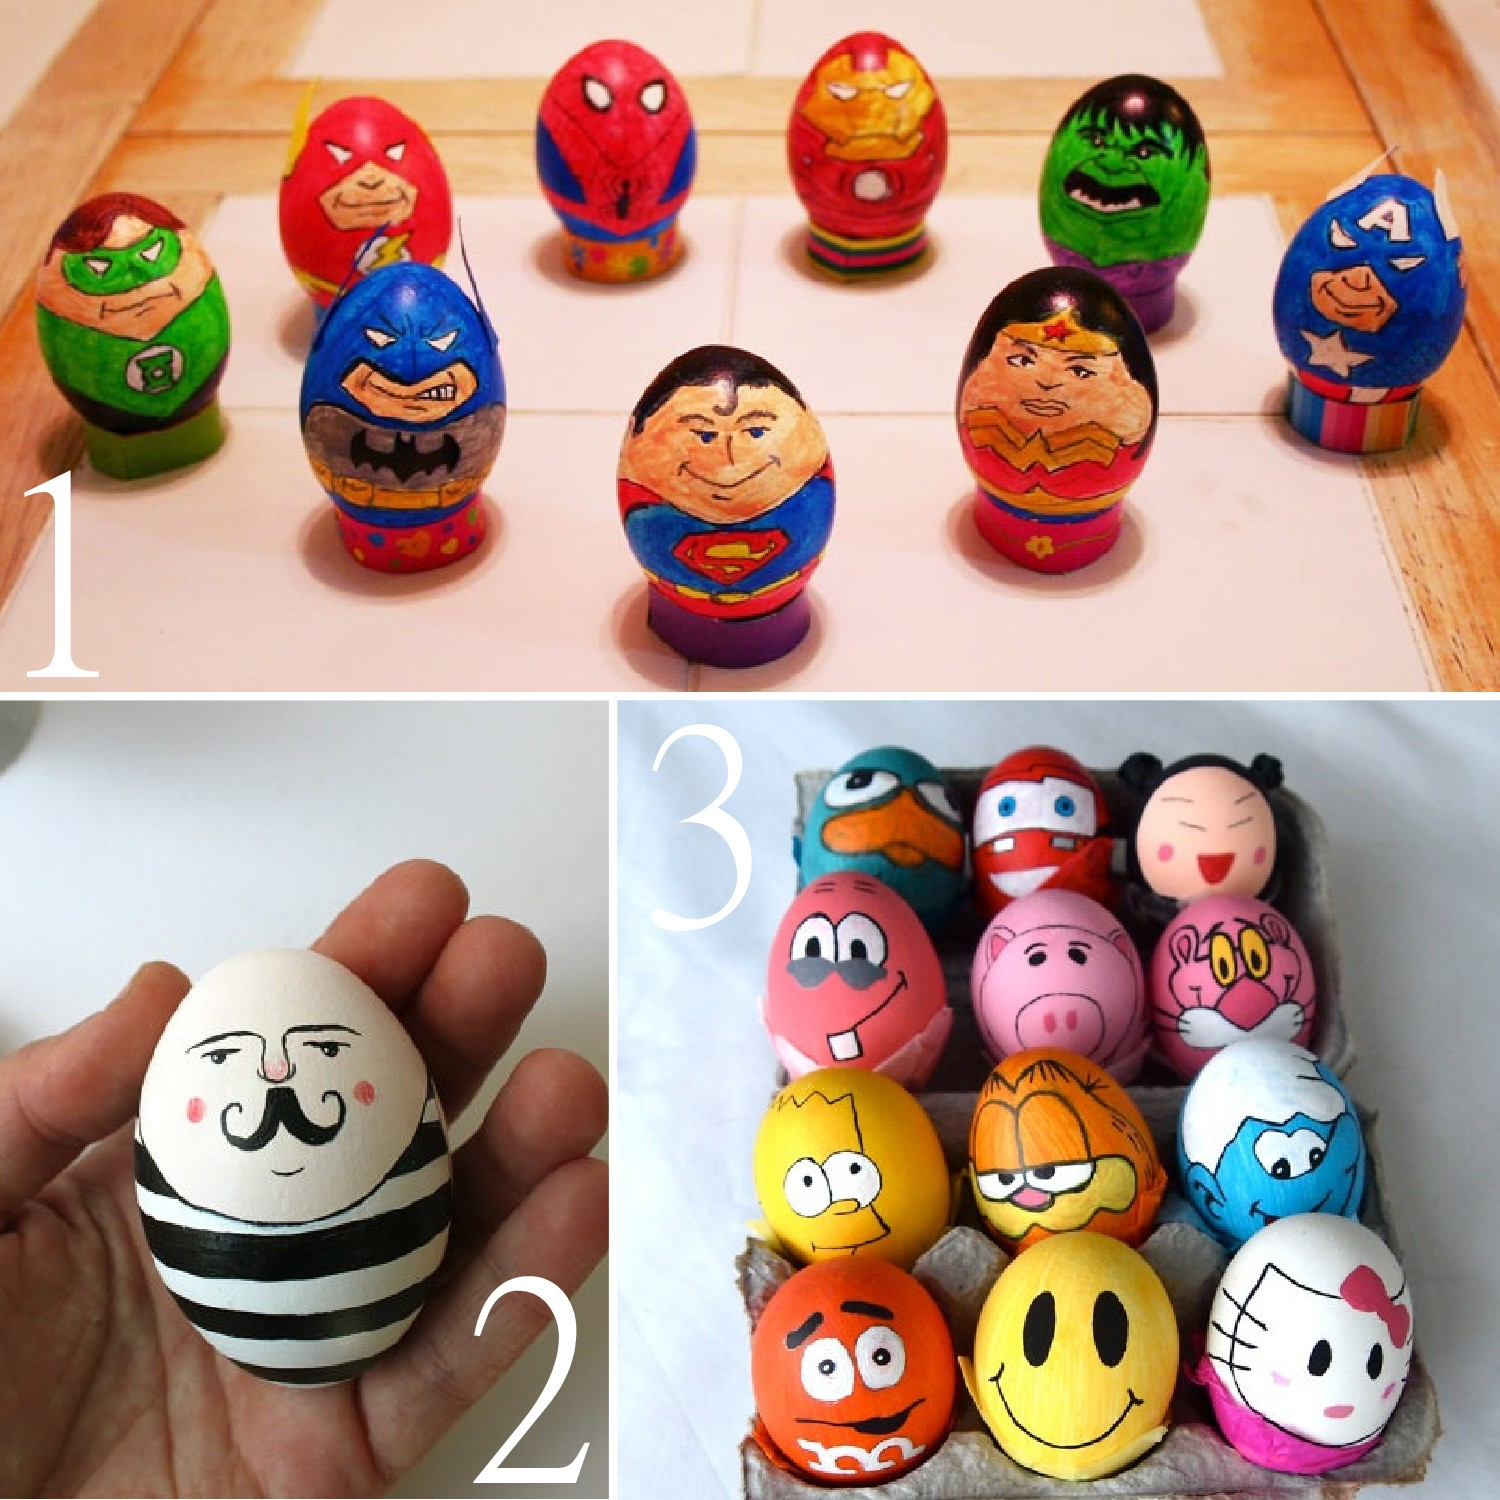 17 Easter Egg Character Ideas The Scrap Shoppe